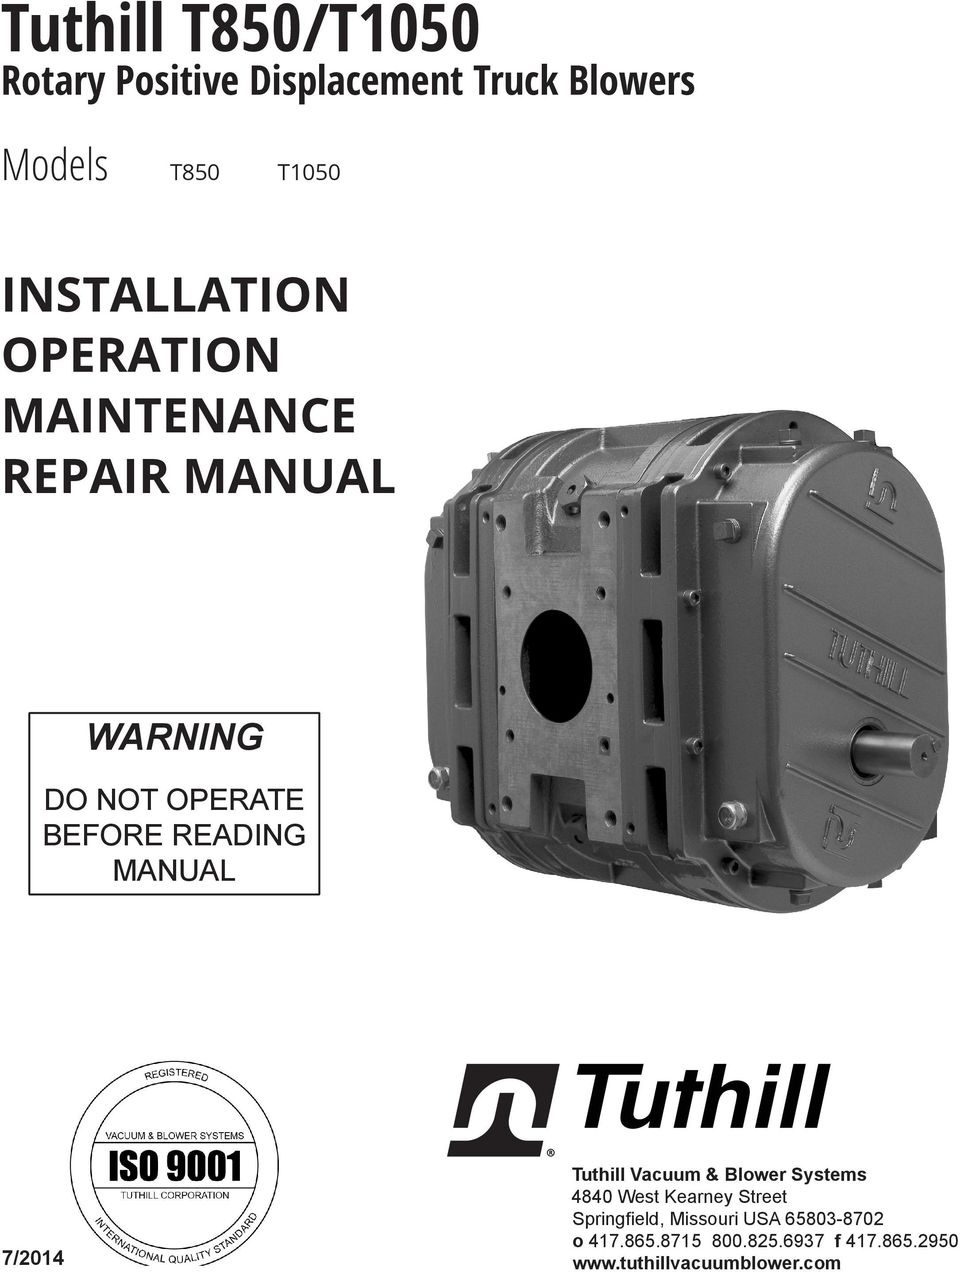 Tuthill T850/T1050 INSTALLATION OPERATION MAINTENANCE REPAIR